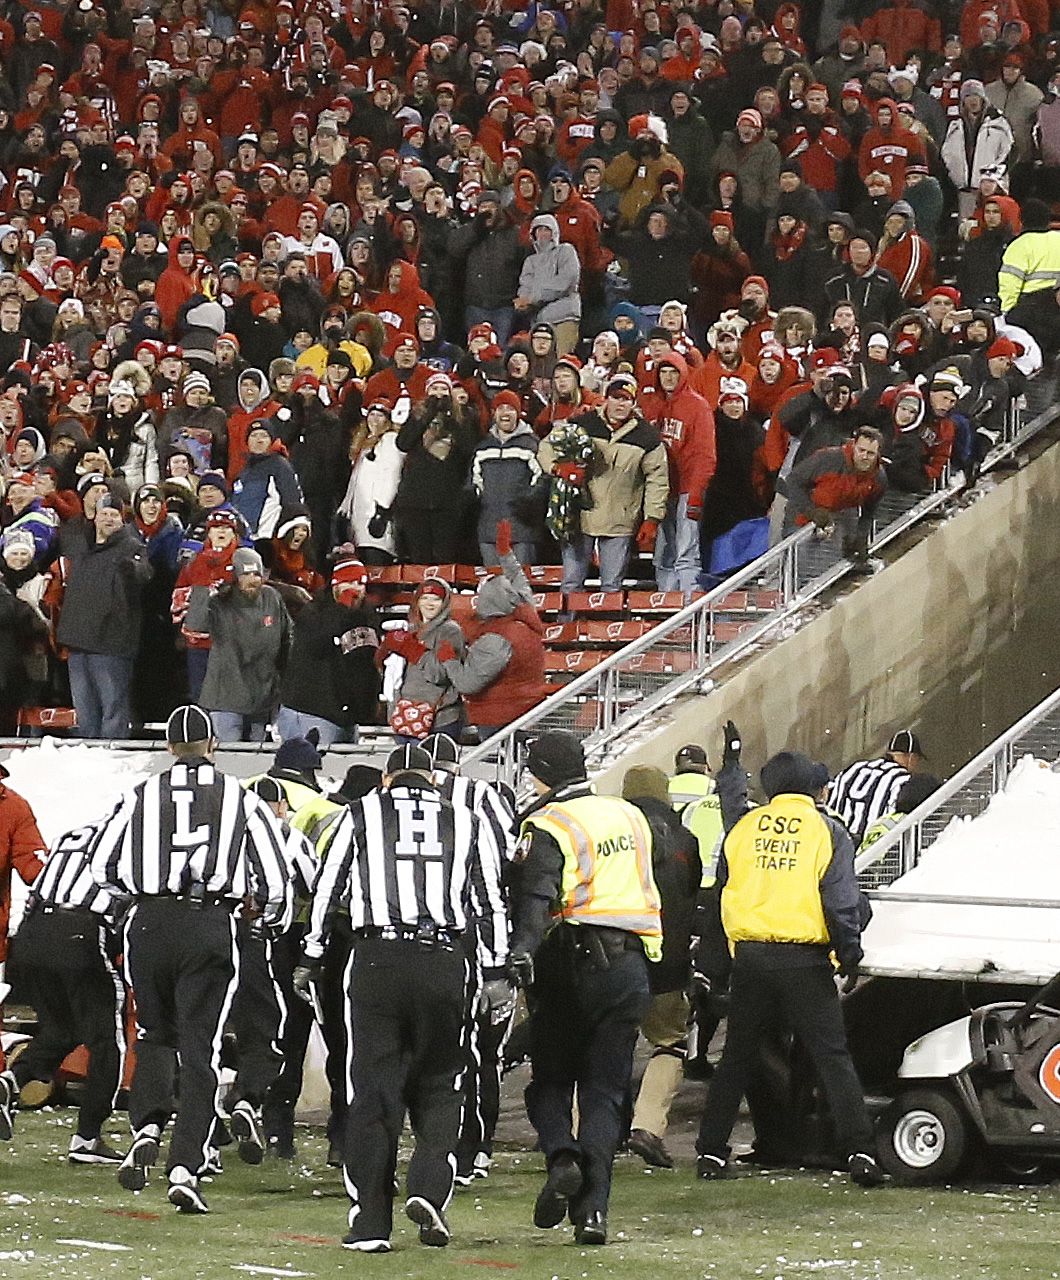 Referees are escorted off the field as fans throw snowballs during the second half of an NCAA college football game between Wisconsin and Northwestern Saturday, Nov. 21, 2015, in Madison, Wis. Northwestern won 13-7. (AP Photo/Morry Gash)